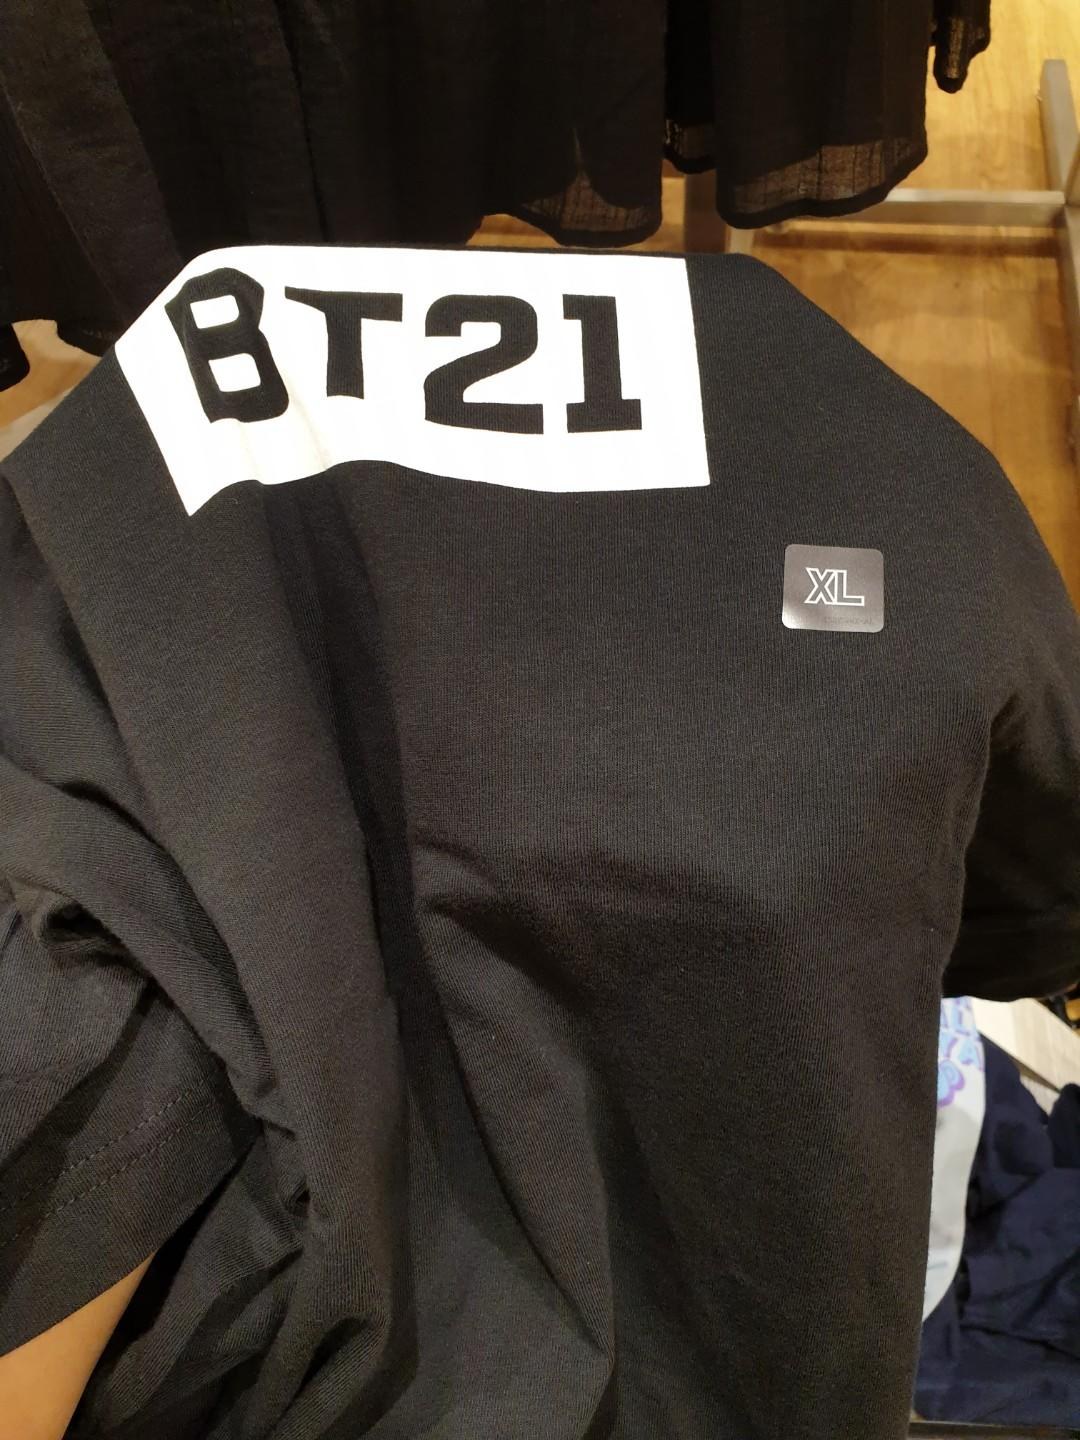 [LIMITED HOUR TODAY 10AM-12PM] Uniqlo x BT21 (21/6) -CLOSED-